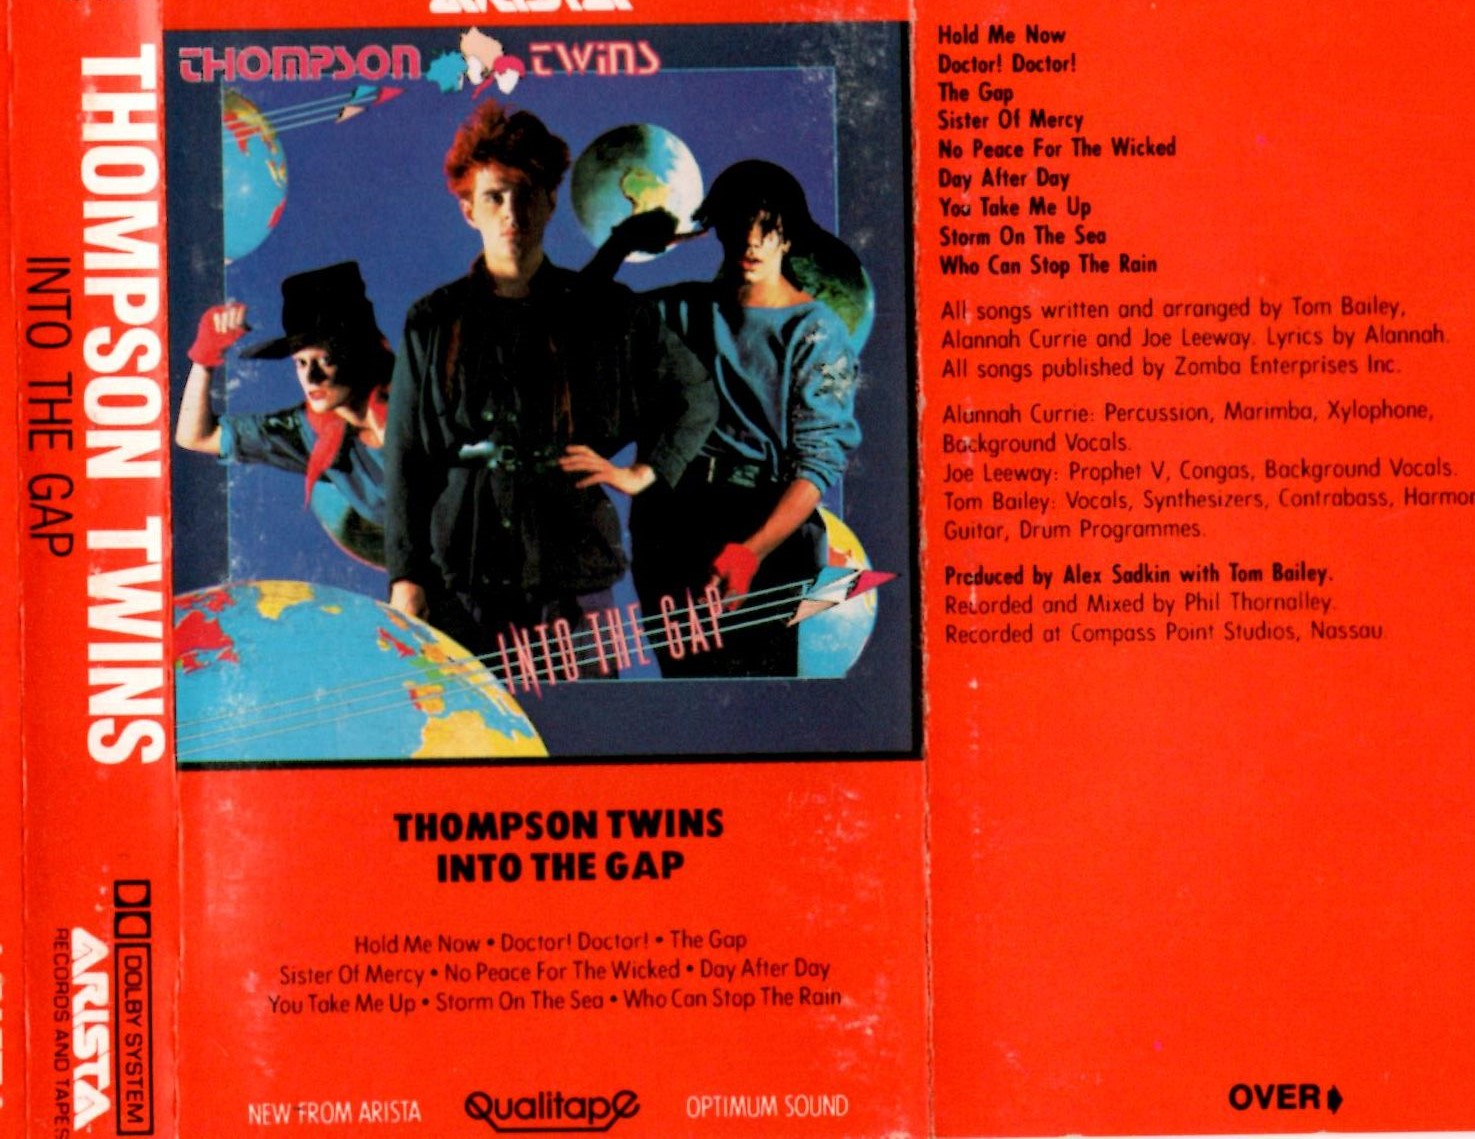 Permanent Record Podcast: Thompson Twins - Into The Gap (1984) Part 1